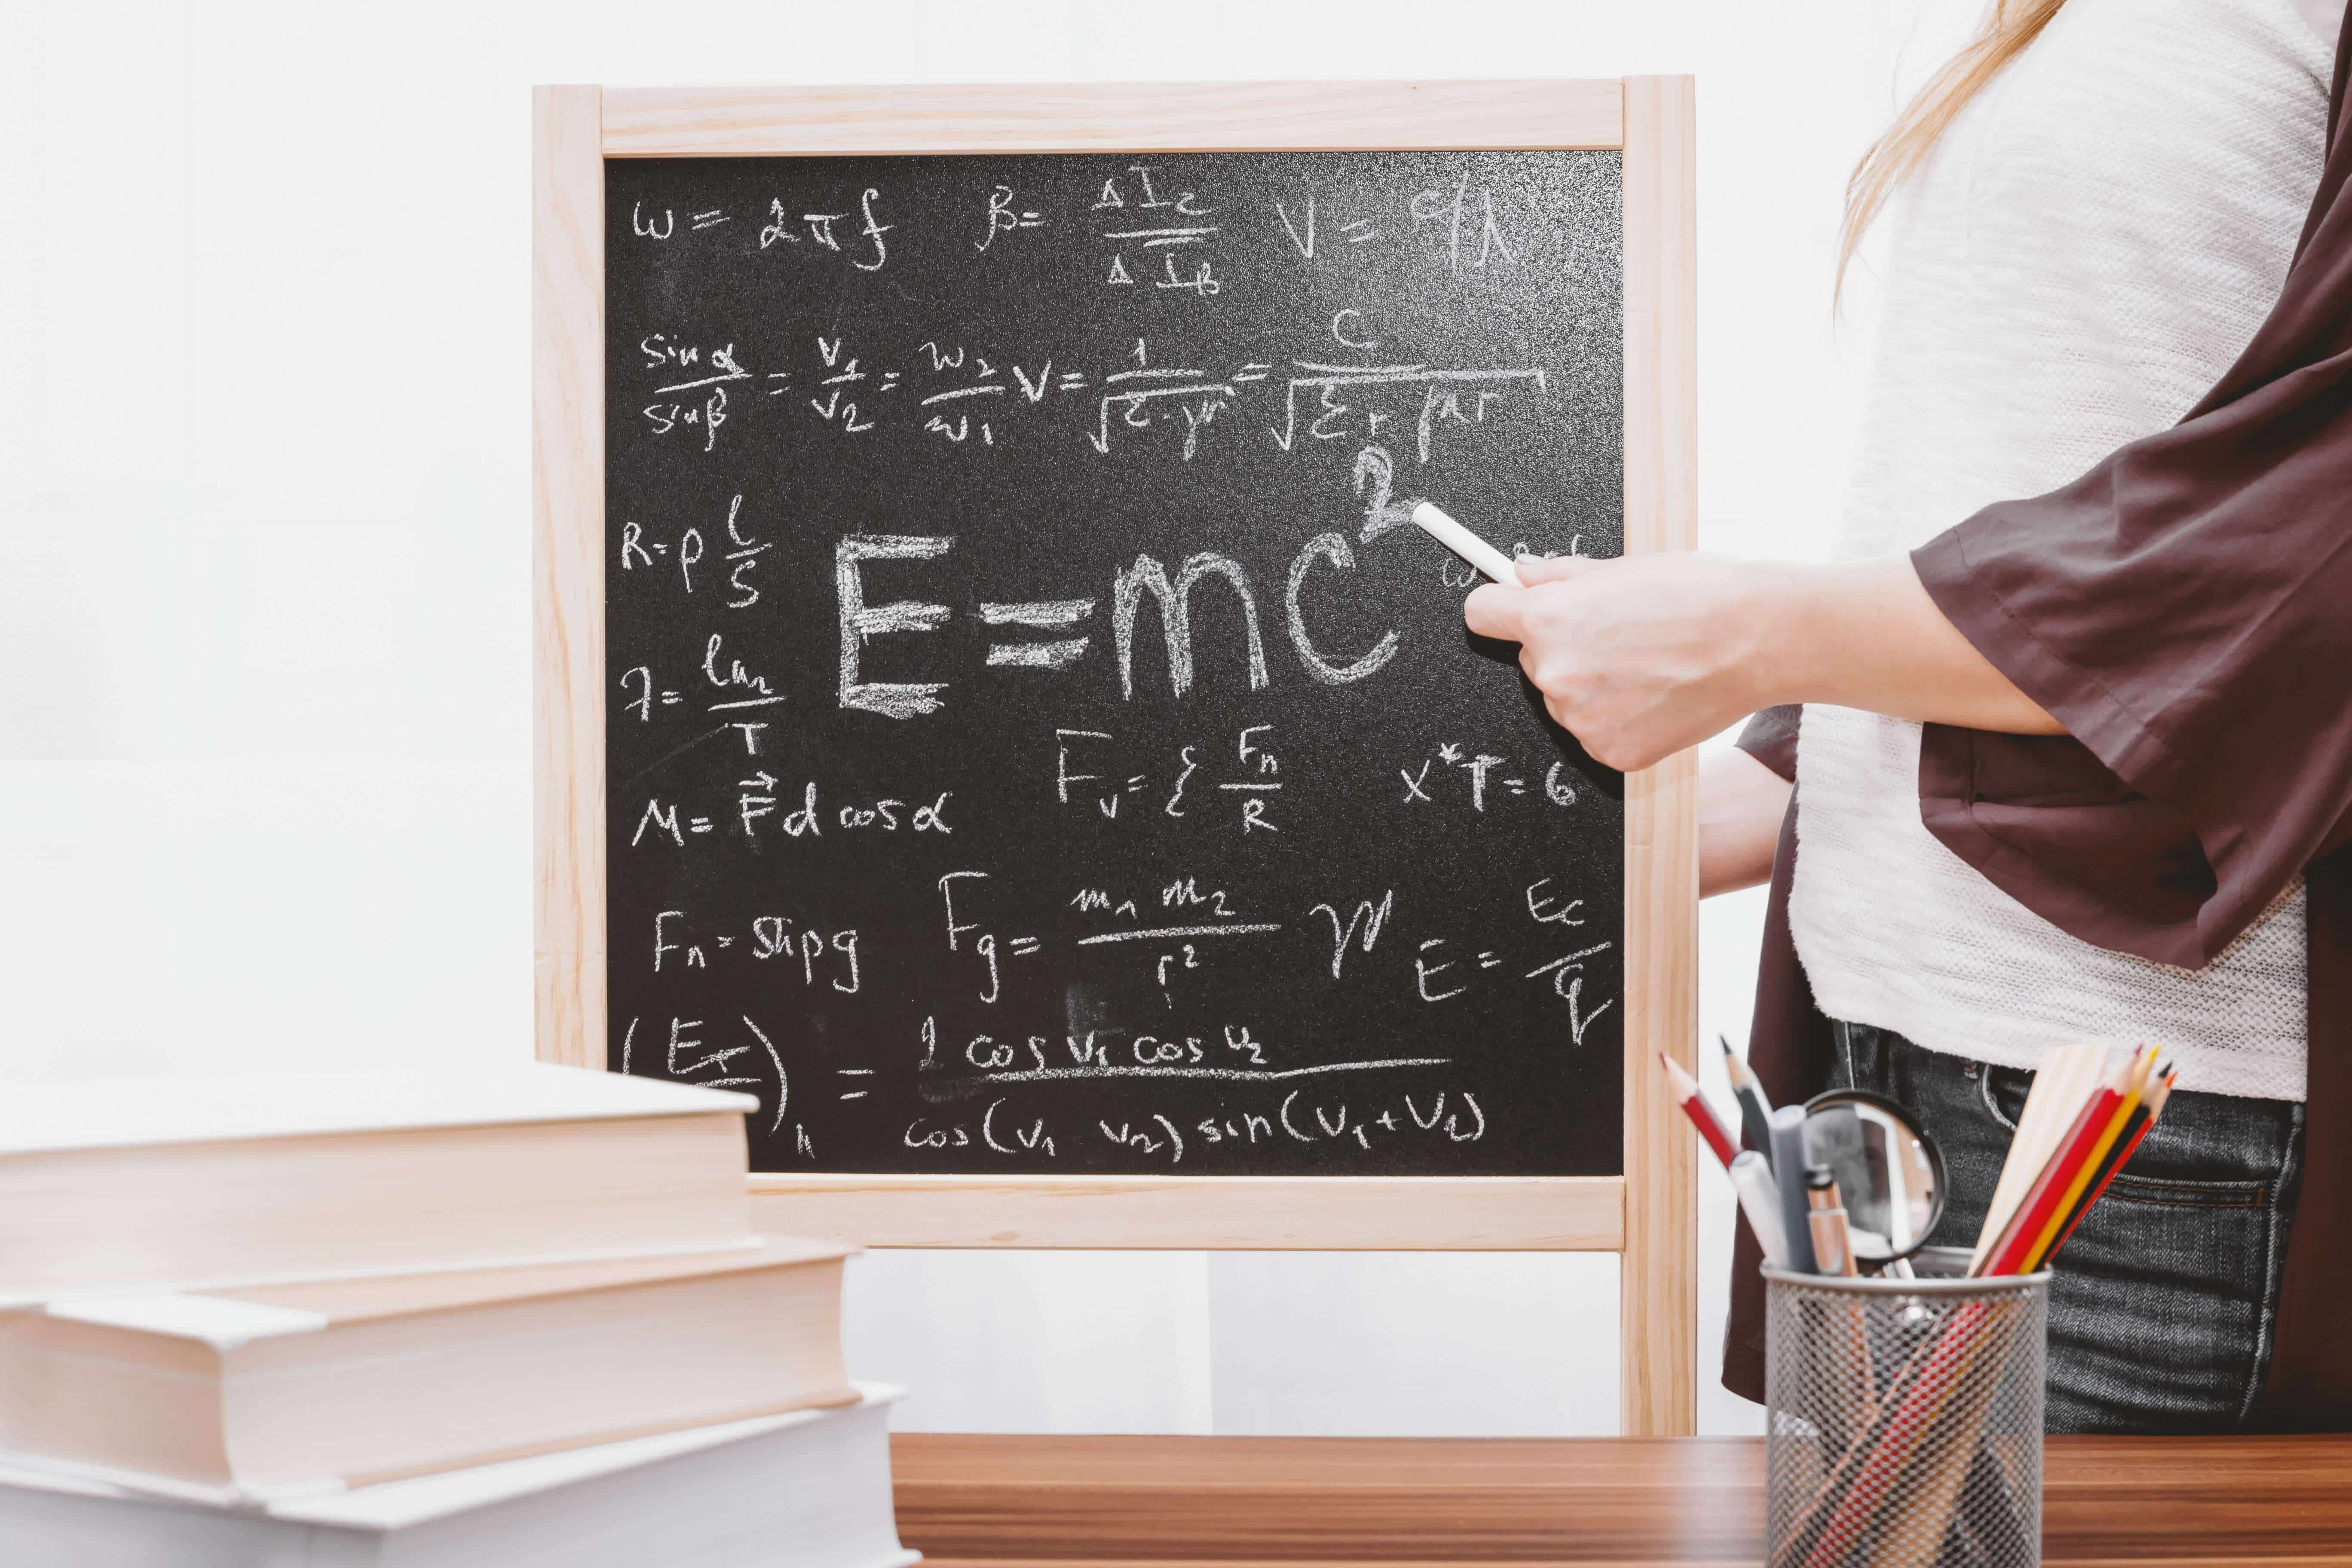 Channels Top Math Channels For College Students – EDUopinions